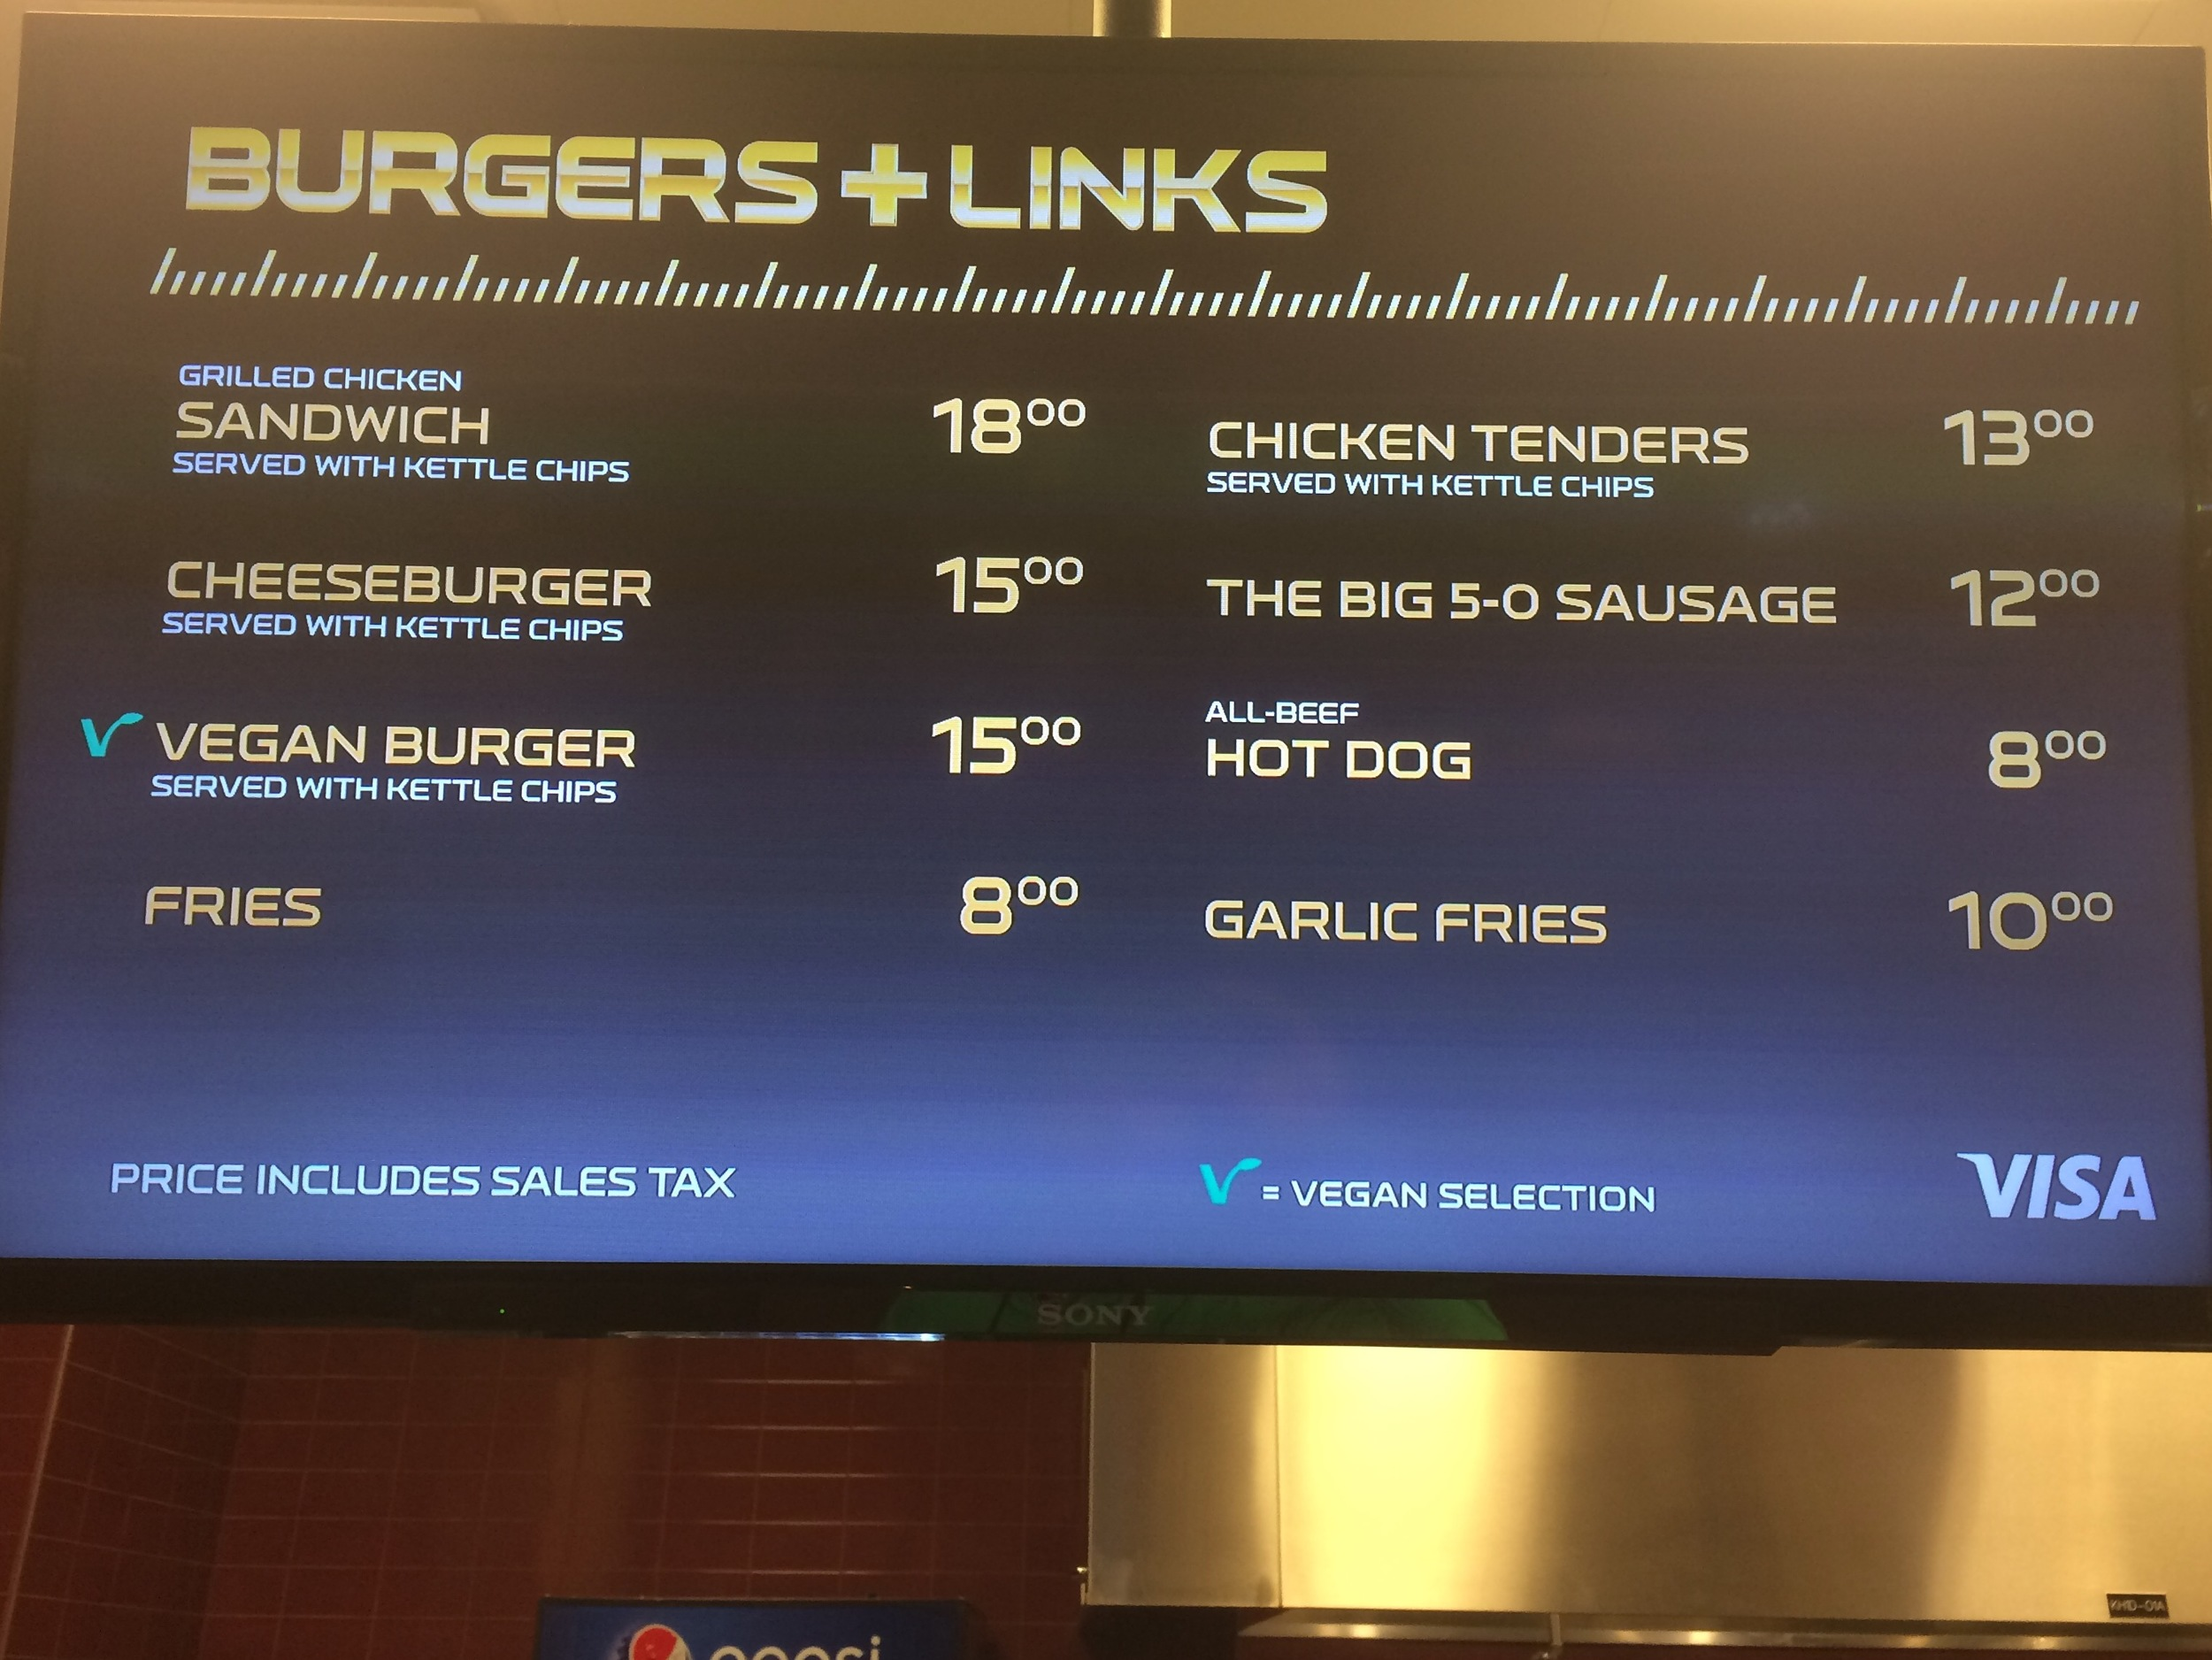 Standard menu options include chicken sandwiches, burgers, hot dogs and vegan burgers